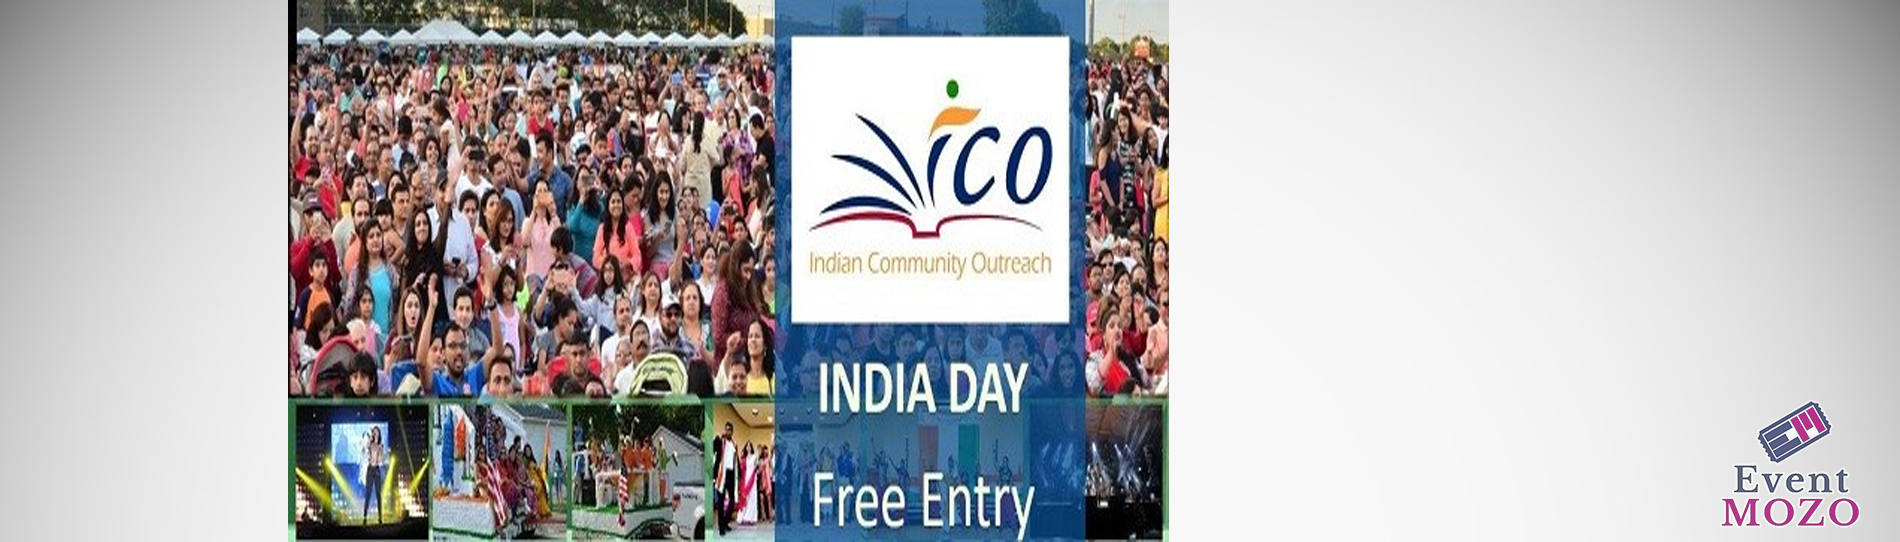 EventMozo 2018 India Day Parade & Celebration